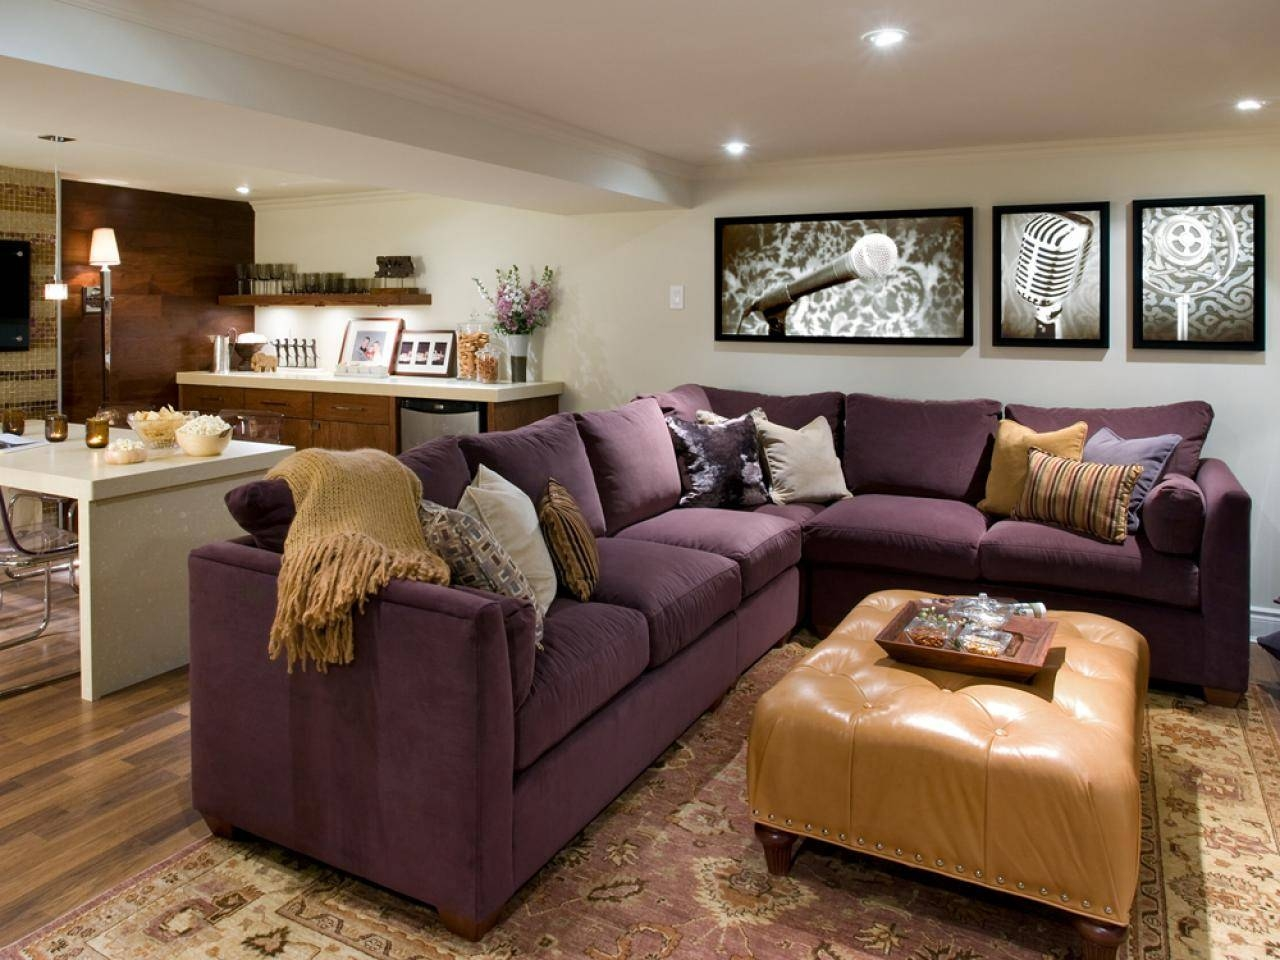 Sofas Center : Excellent Purple Sectional Sofa Photos Design for Eggplant Sectional Sofa (Image 22 of 30)